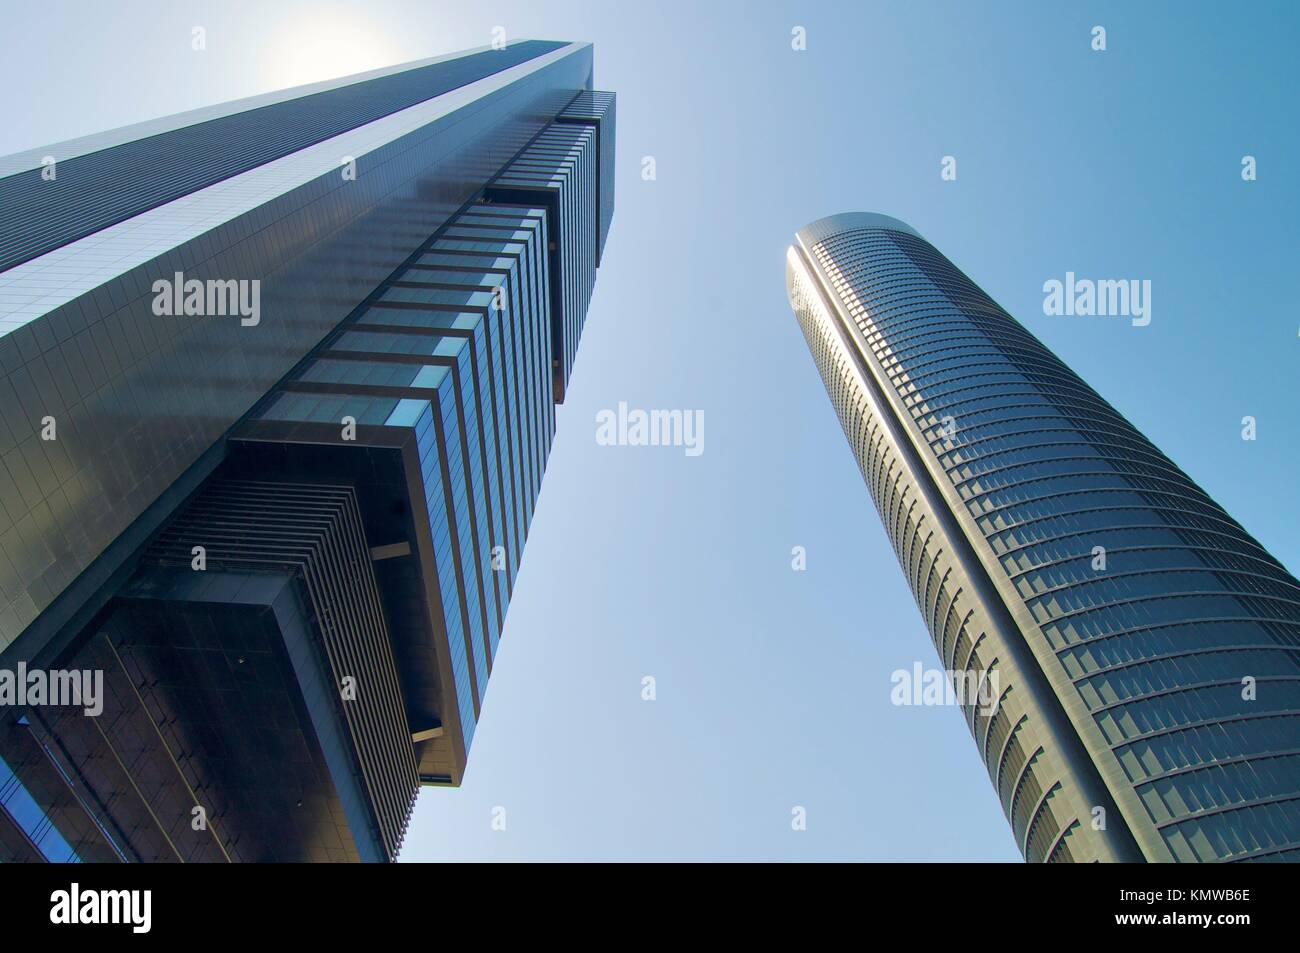 Two skyscrapers from below in Madrid, Spain - Stock Image